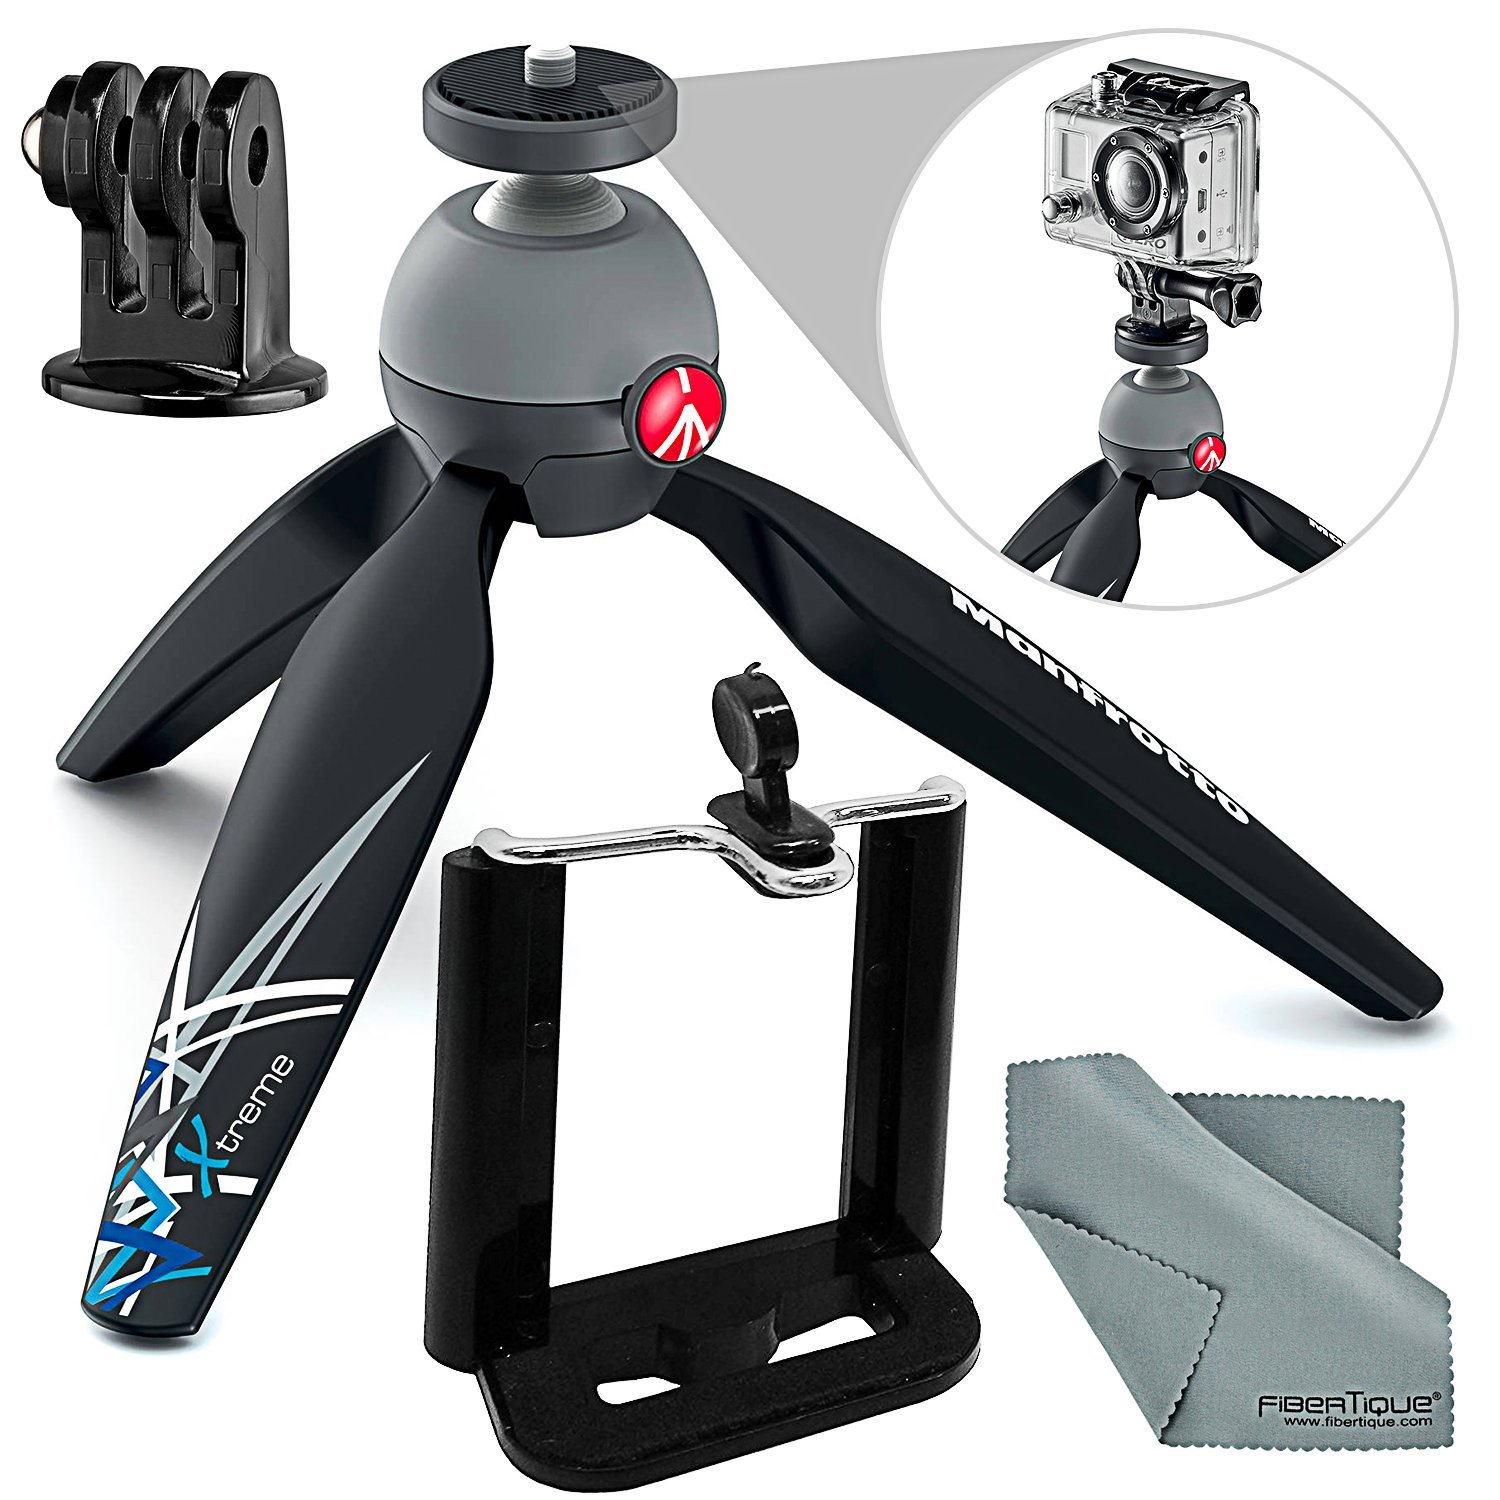 Manfrotto PIXI Xtreme Mini Table Top / Handgrip Tripod Bundle with Smartphone Adapter + Fibertique Cloth by Photo Savings